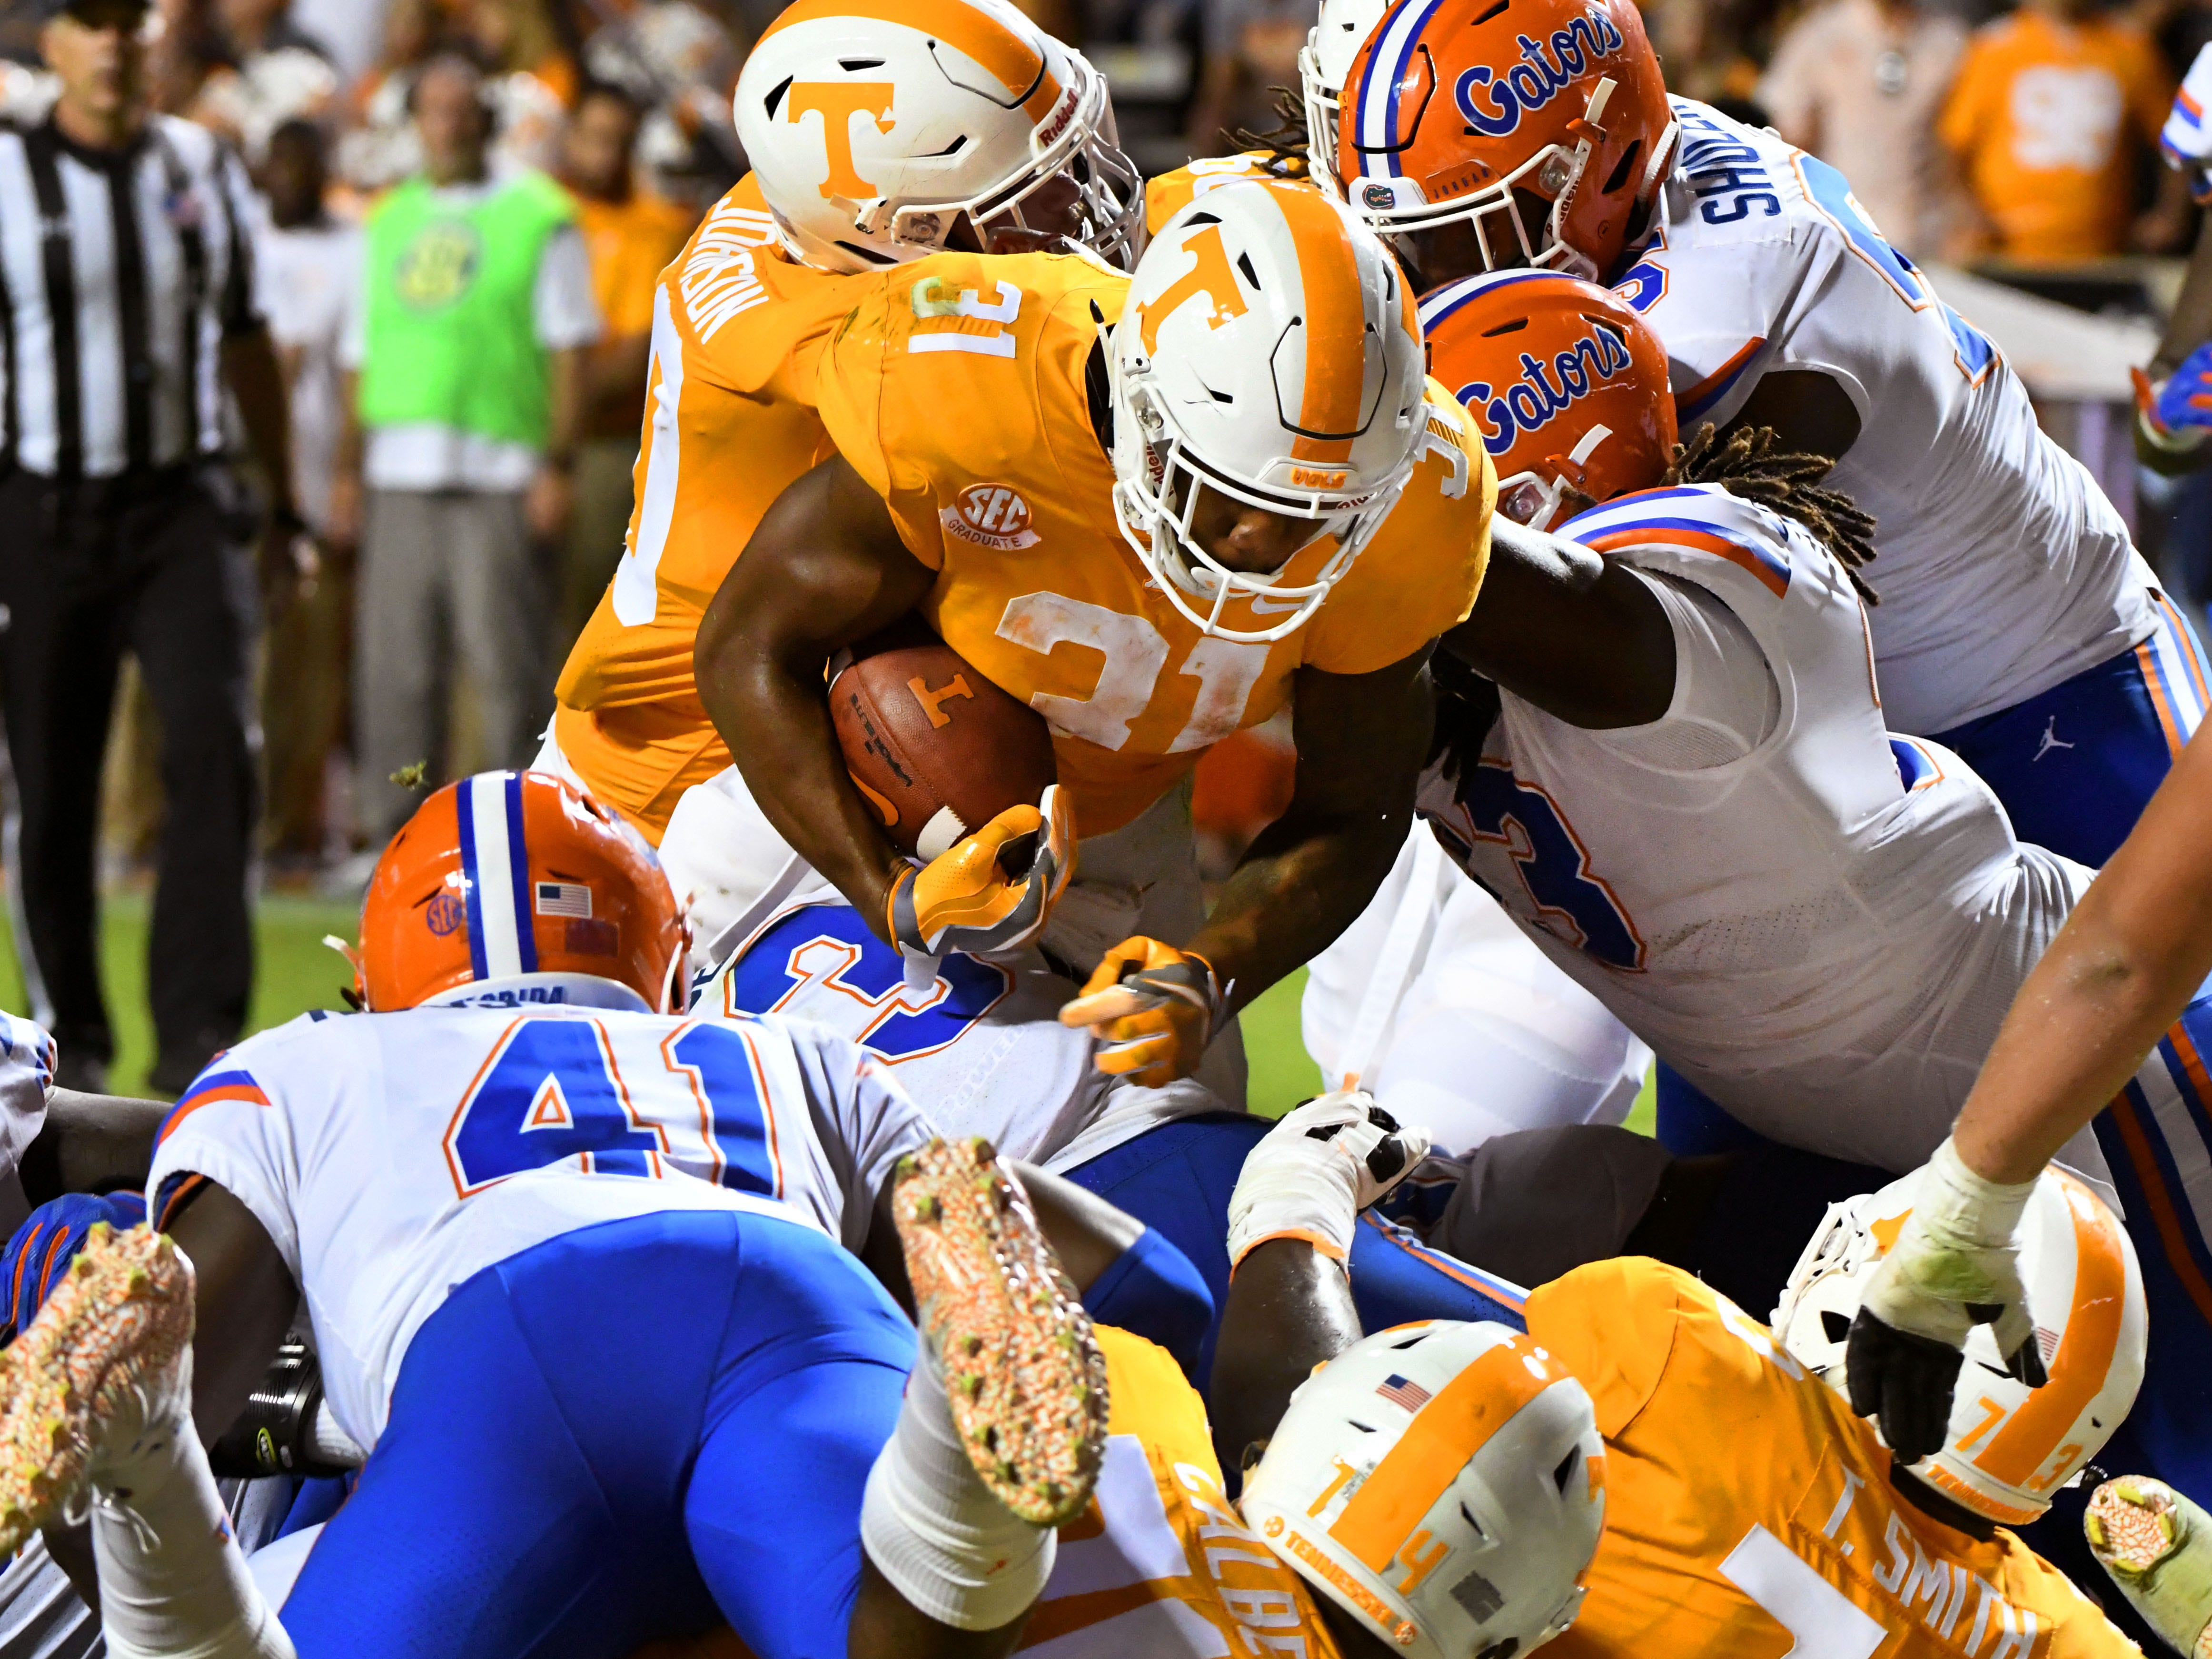 Tennessee running back Madre London (31) scores a touchdown during second half of their 47-21 loss to Florida in Neyland Stadium Saturday, September 22, 2018 in Knoxville, Tenn.